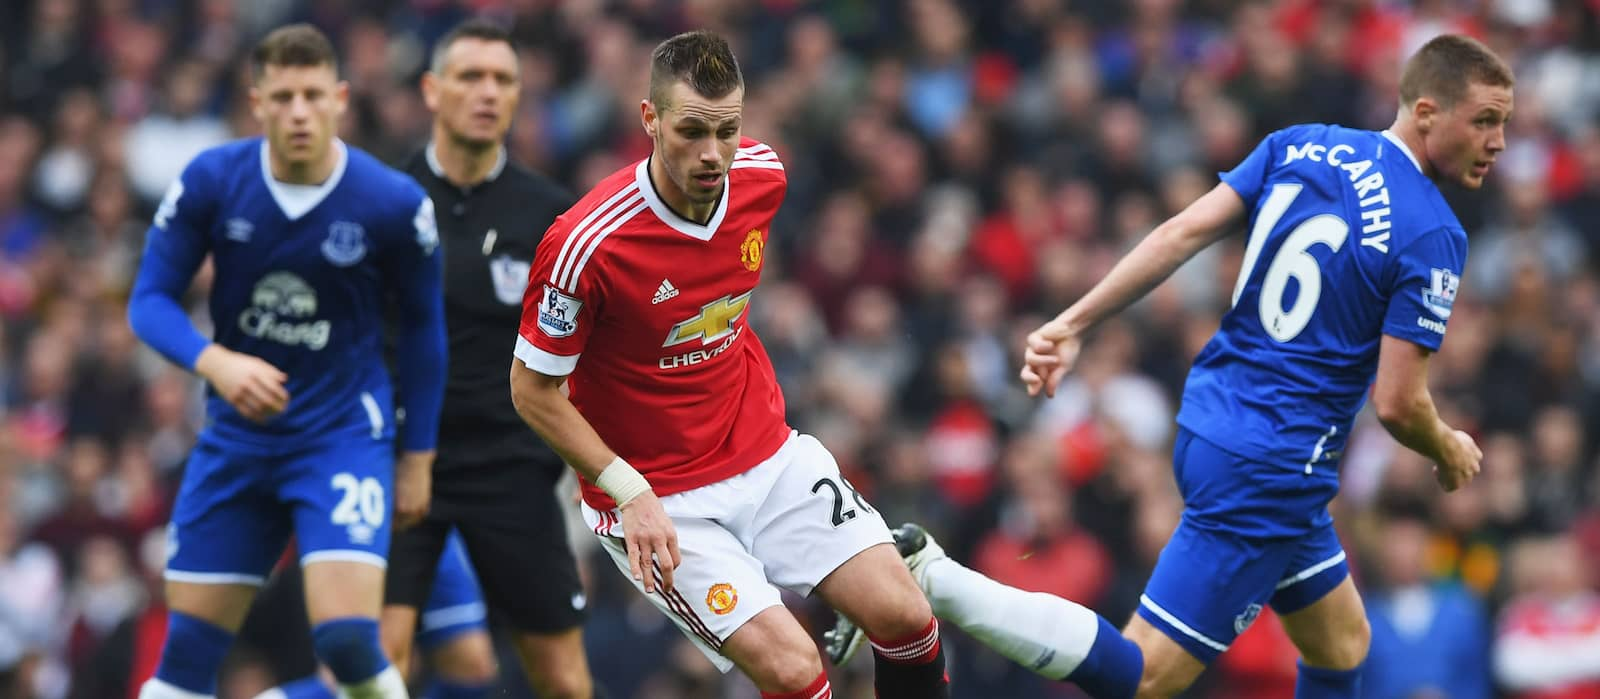 Morgan Schneiderlin undergoing Everton medical today ahead of move